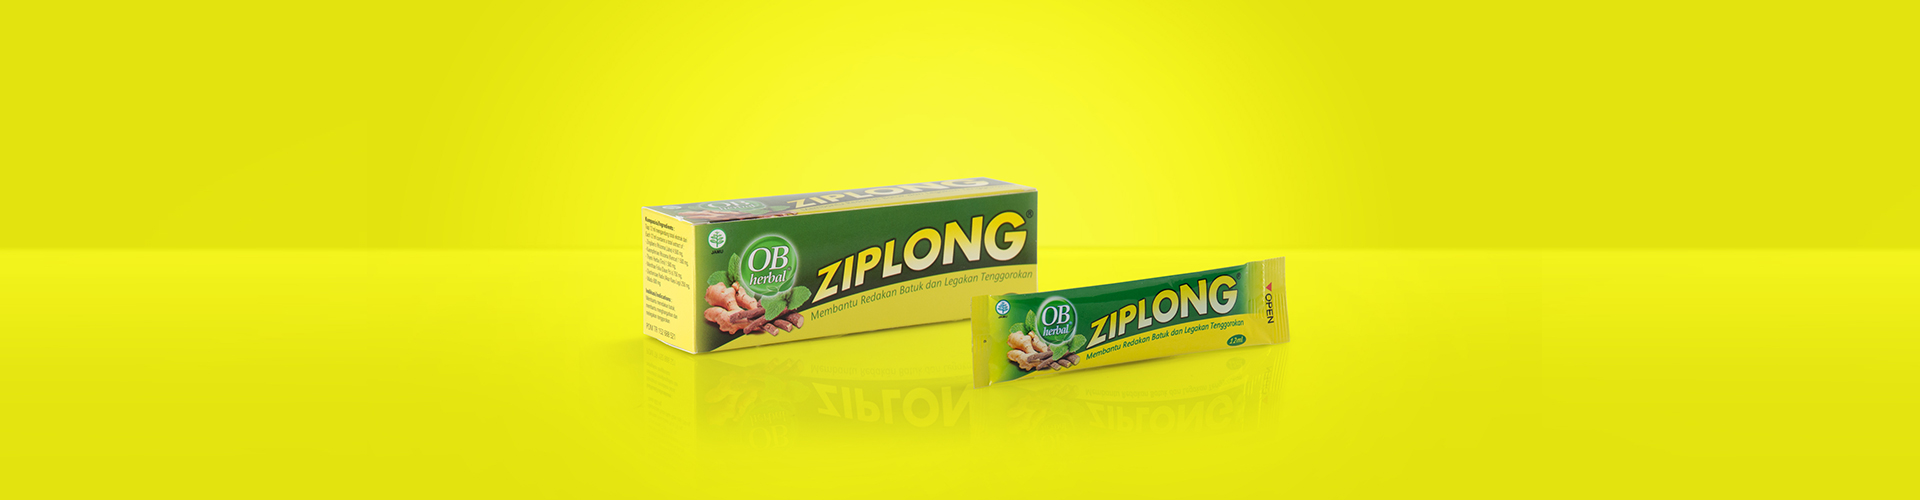 OB Herbal Ziplong